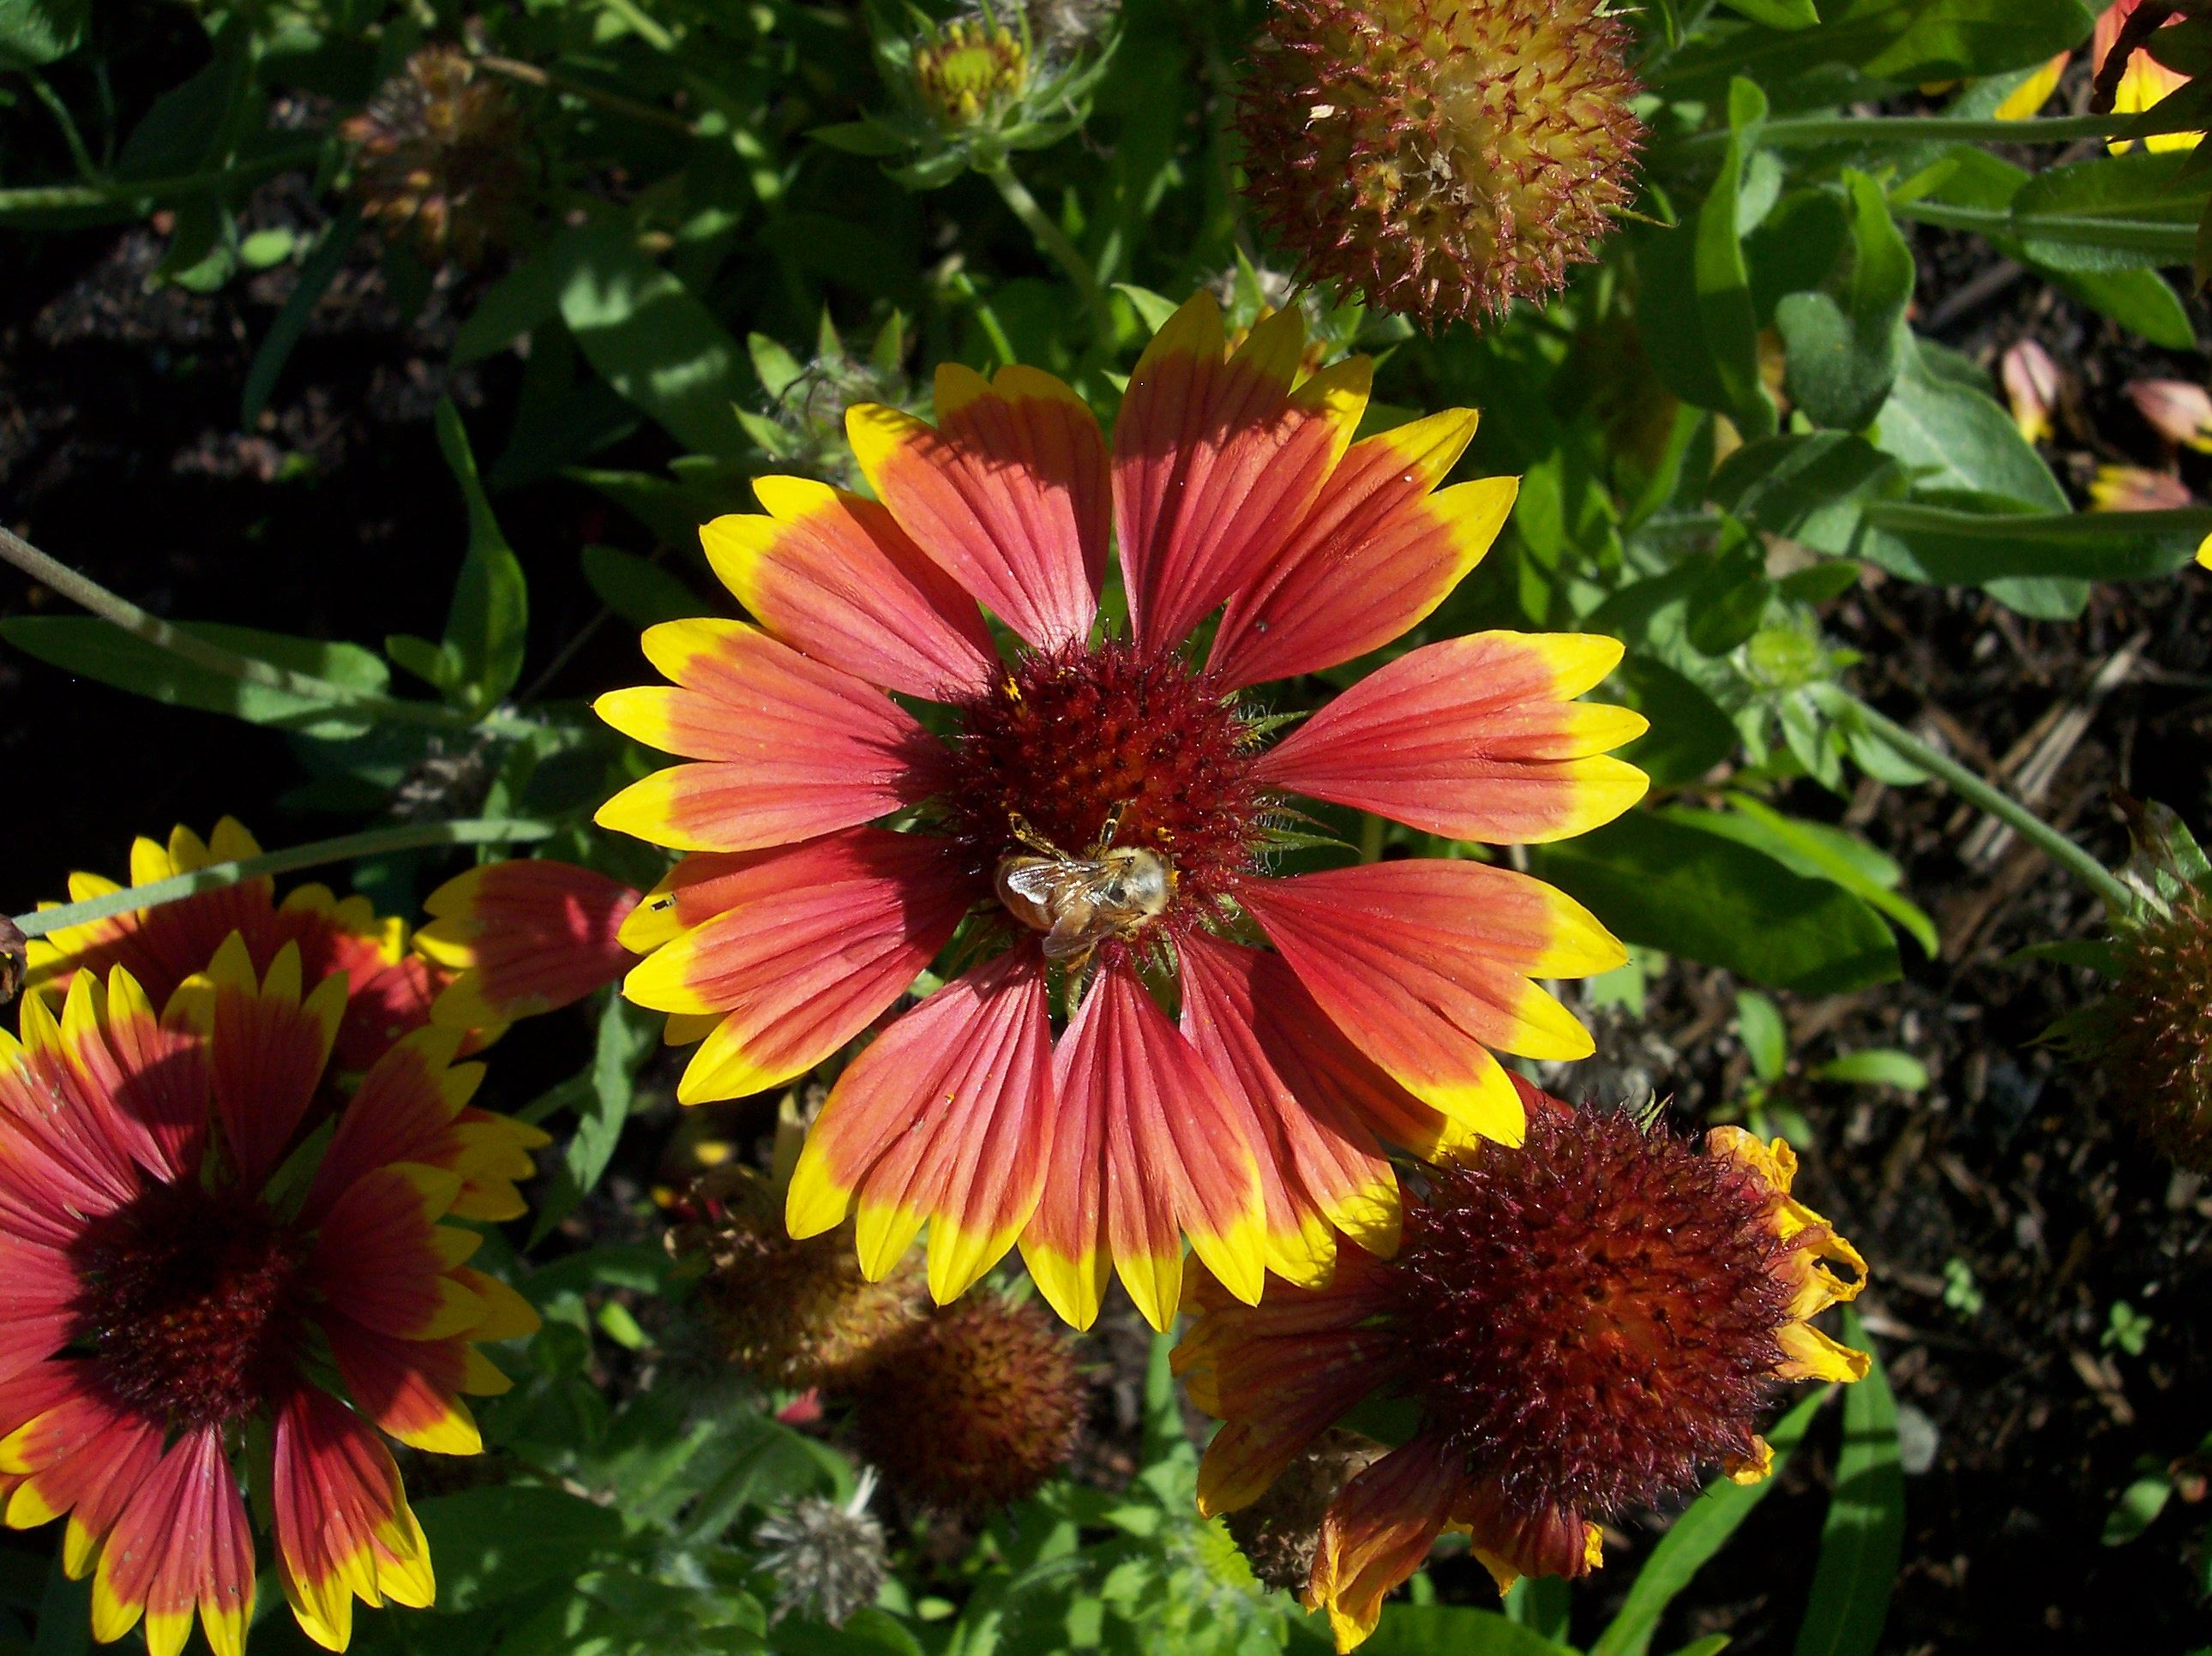 Honeybee on Gaillardia